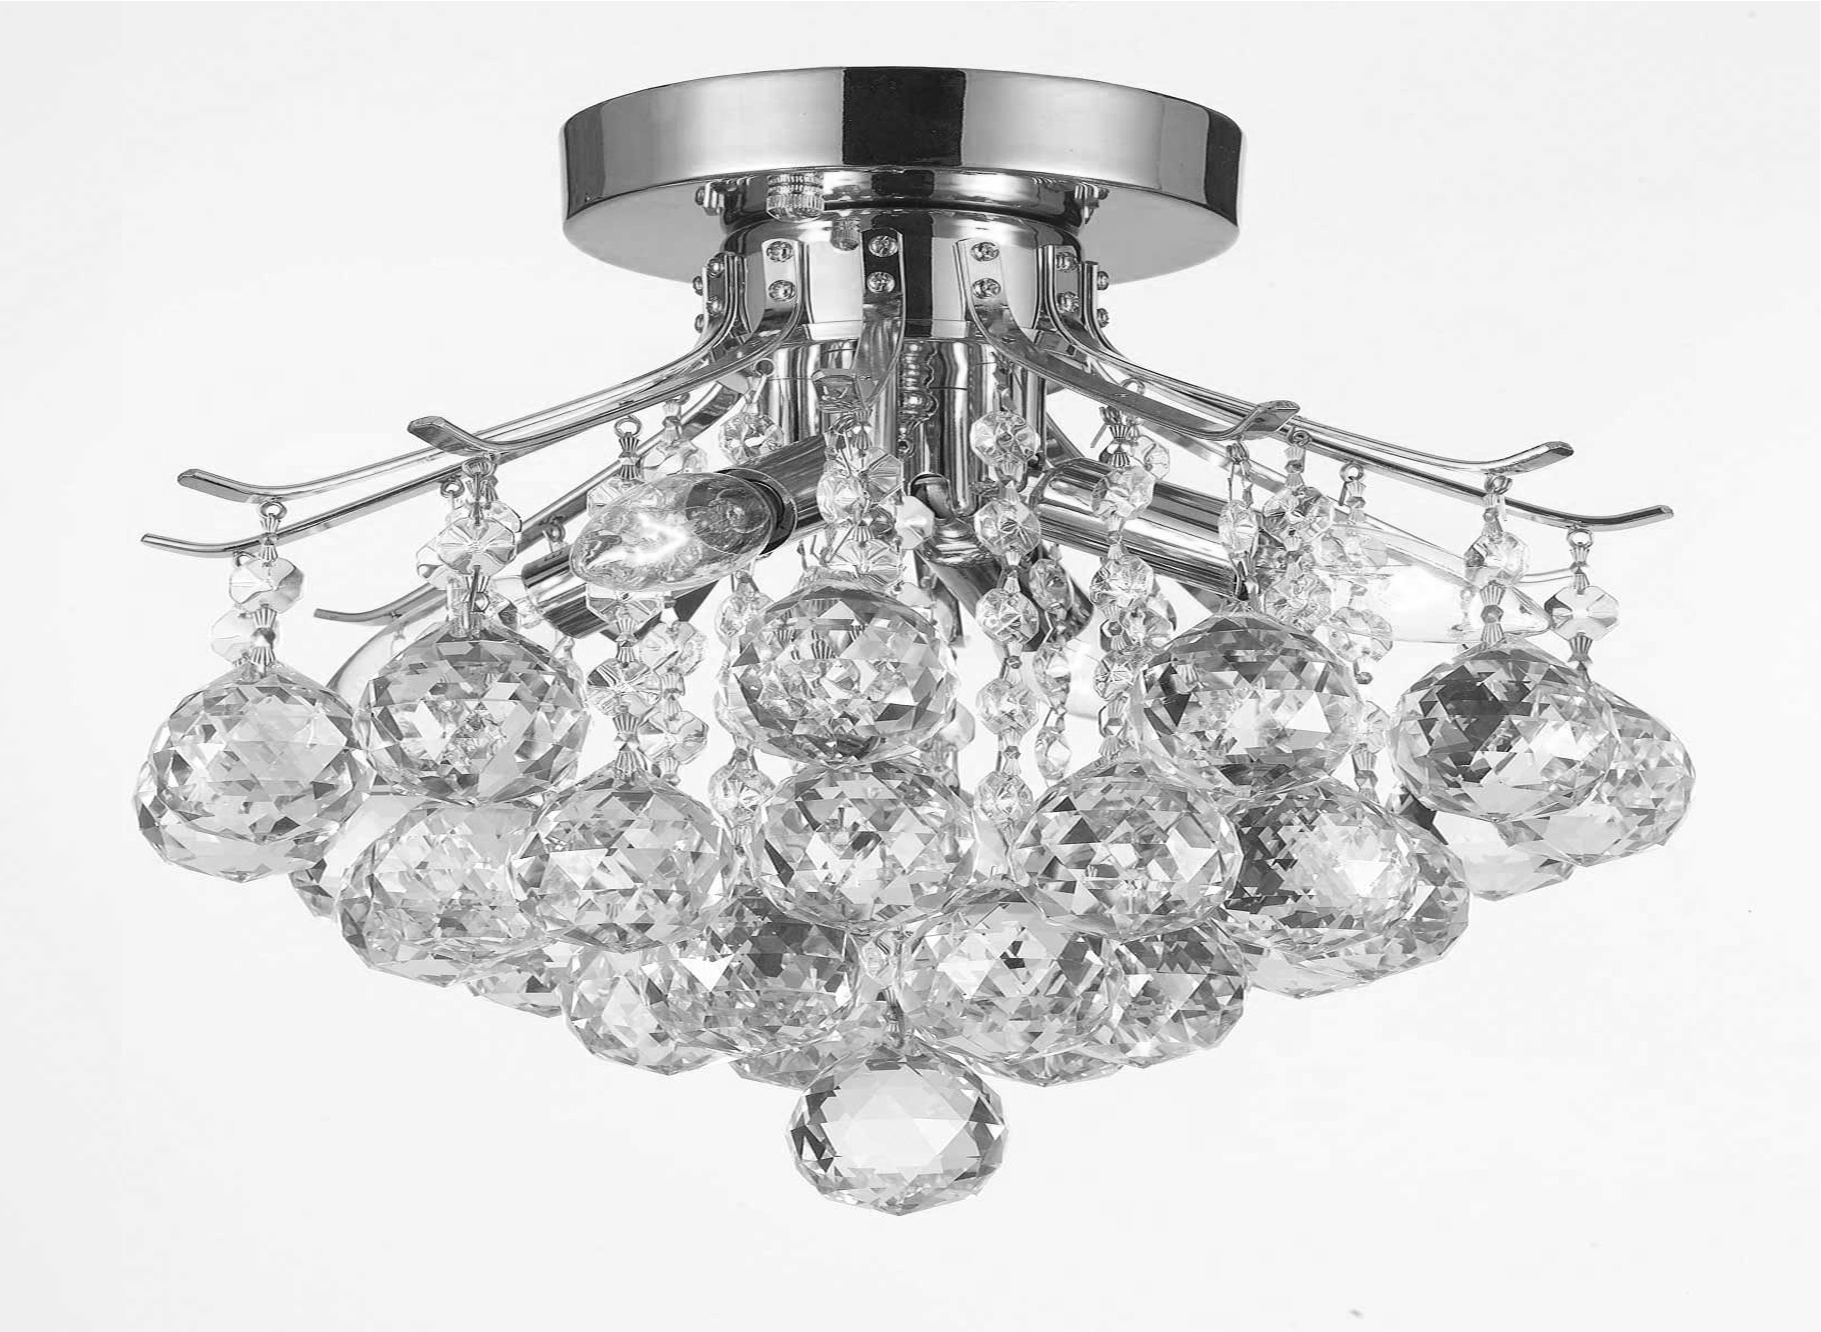 Wall Mount Crystal Chandeliers In Latest G7 Cs/1132/4 Gallery Empire Style Empire Crystal Chandelier (View 13 of 20)